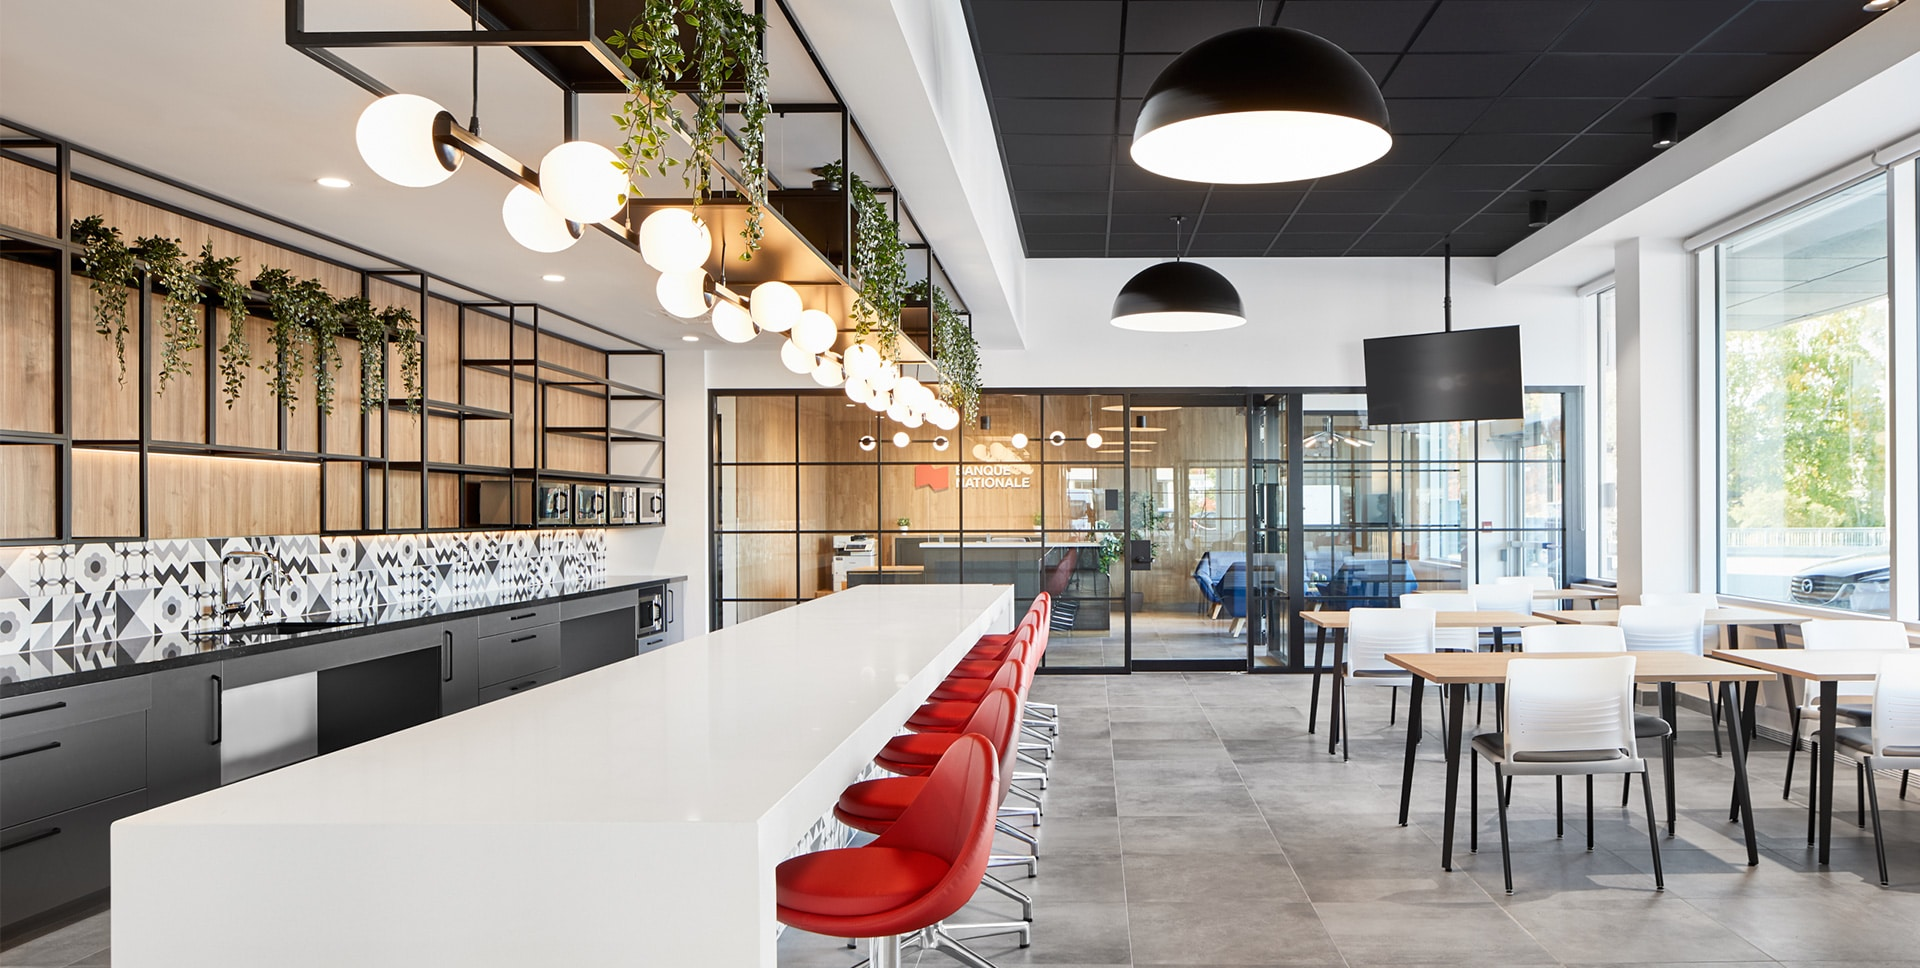 Cafeteria at National Bank offices in Sherbrooke designed by VAD